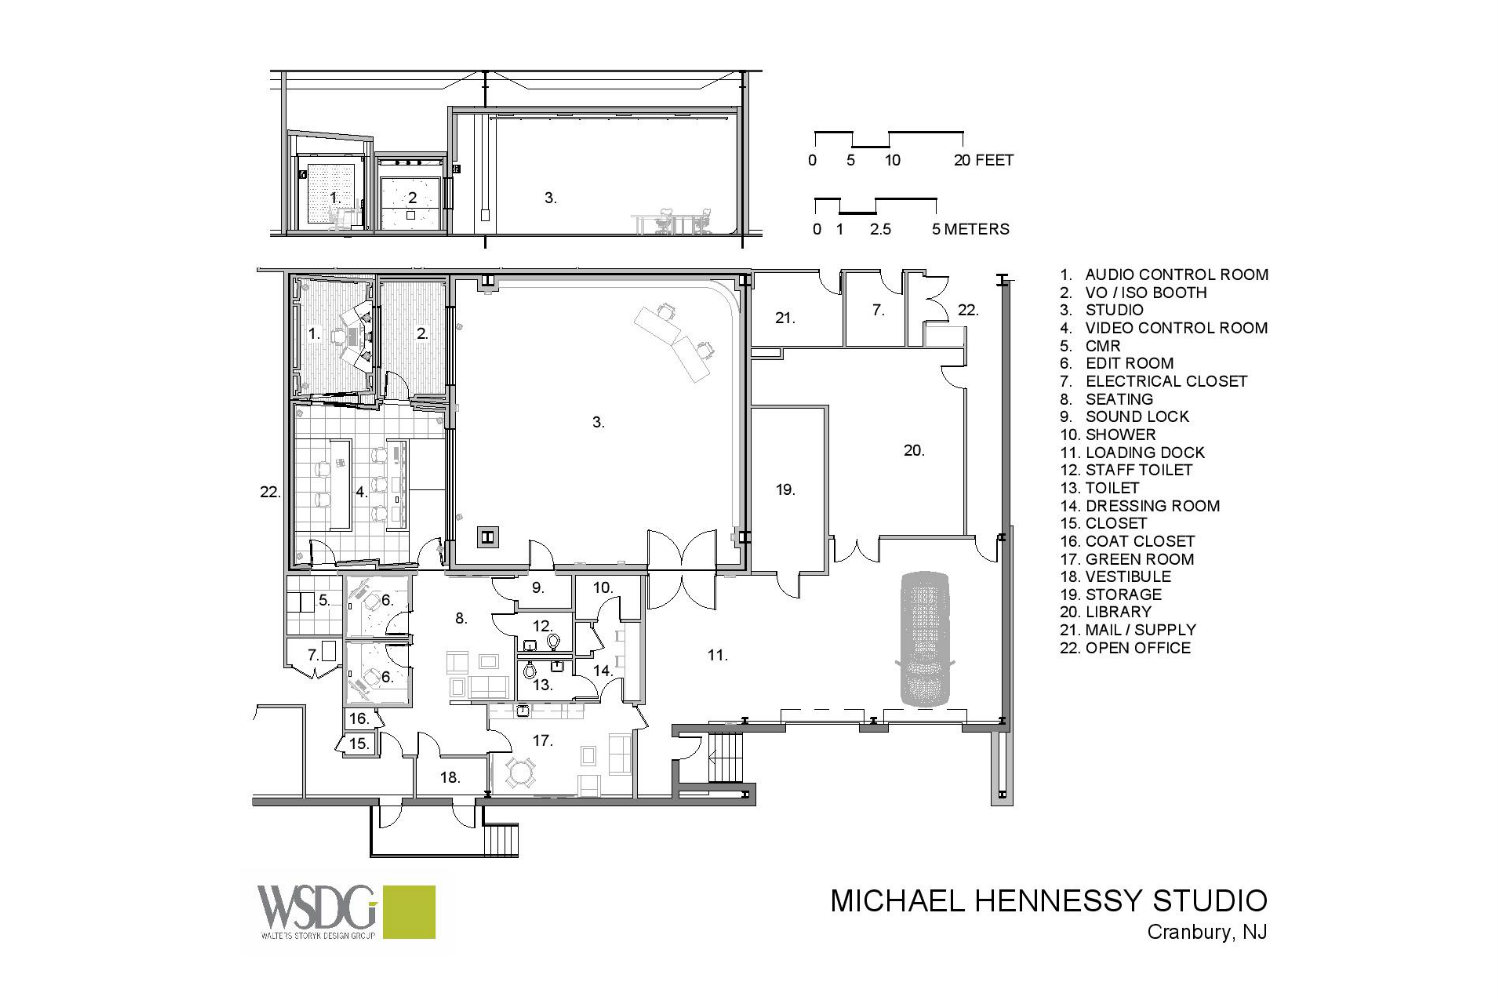 MJH Studios in NJ, designed by WSDG, is a world-class recording and production facility for the main use of creating audio and video healthcare-related content by MJH for their clients. Presentation Drawing 1